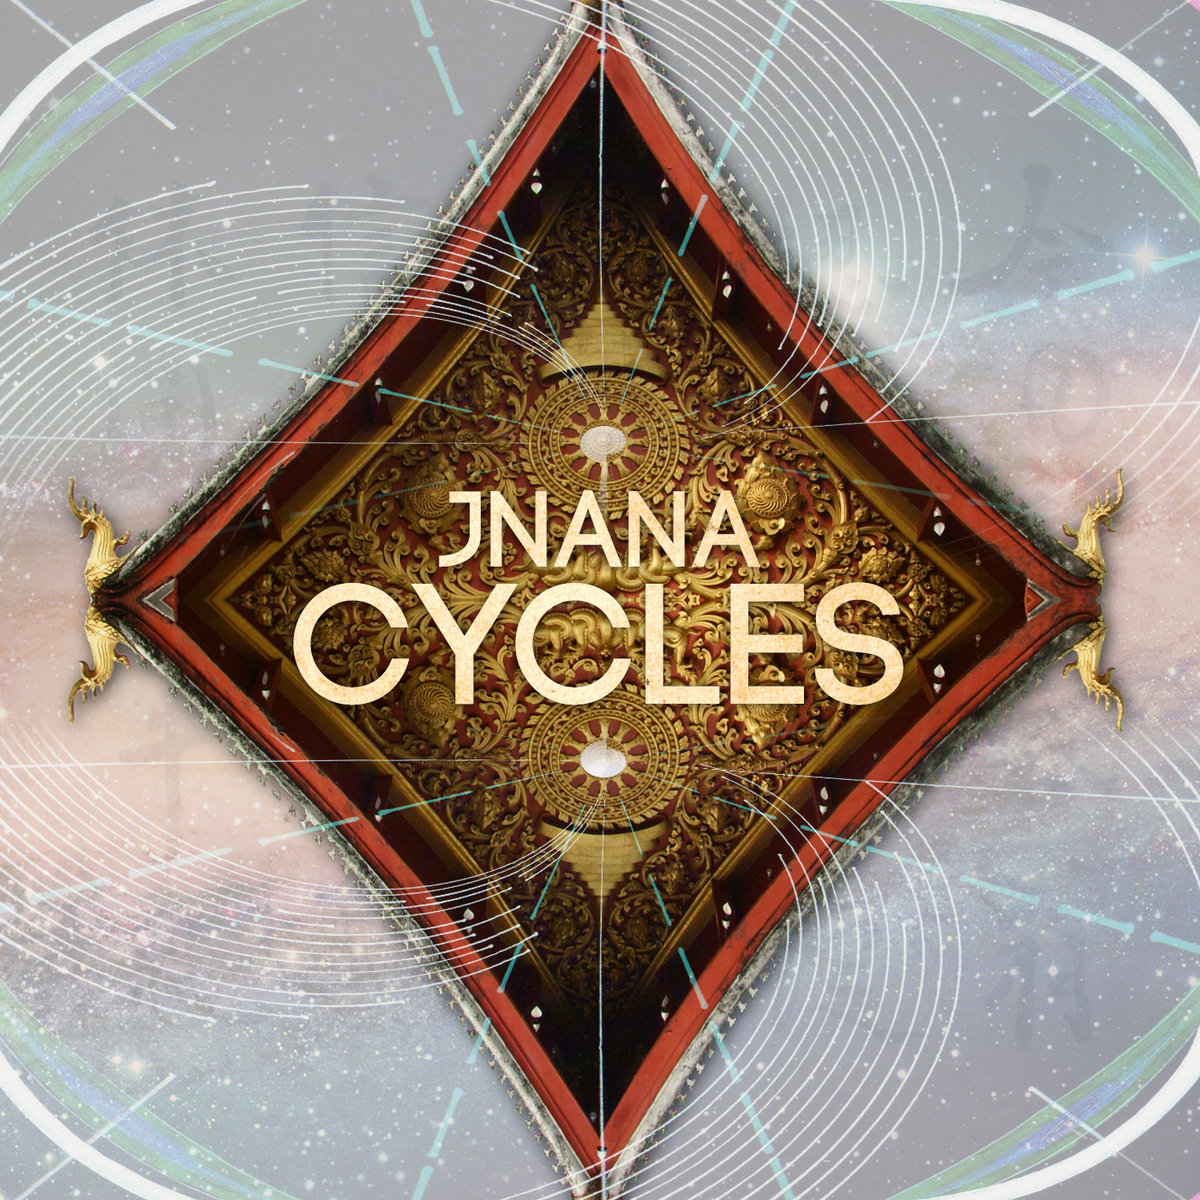 Jnana feat. Shamik - Switch The Tip @ 'Cycles' album (bass, crunk)